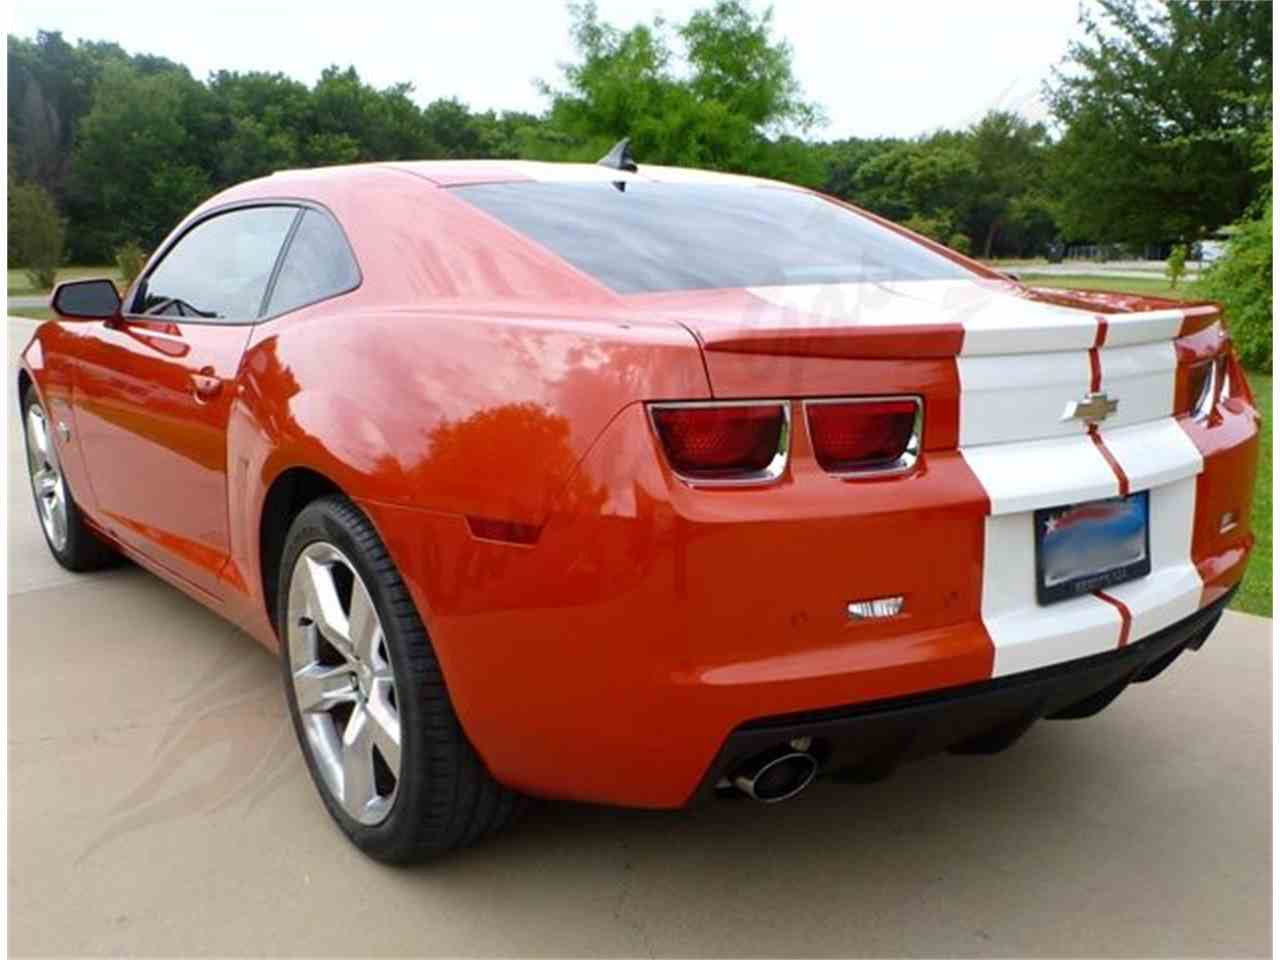 2010 chevrolet camaro ss pace car edition for sale. Black Bedroom Furniture Sets. Home Design Ideas